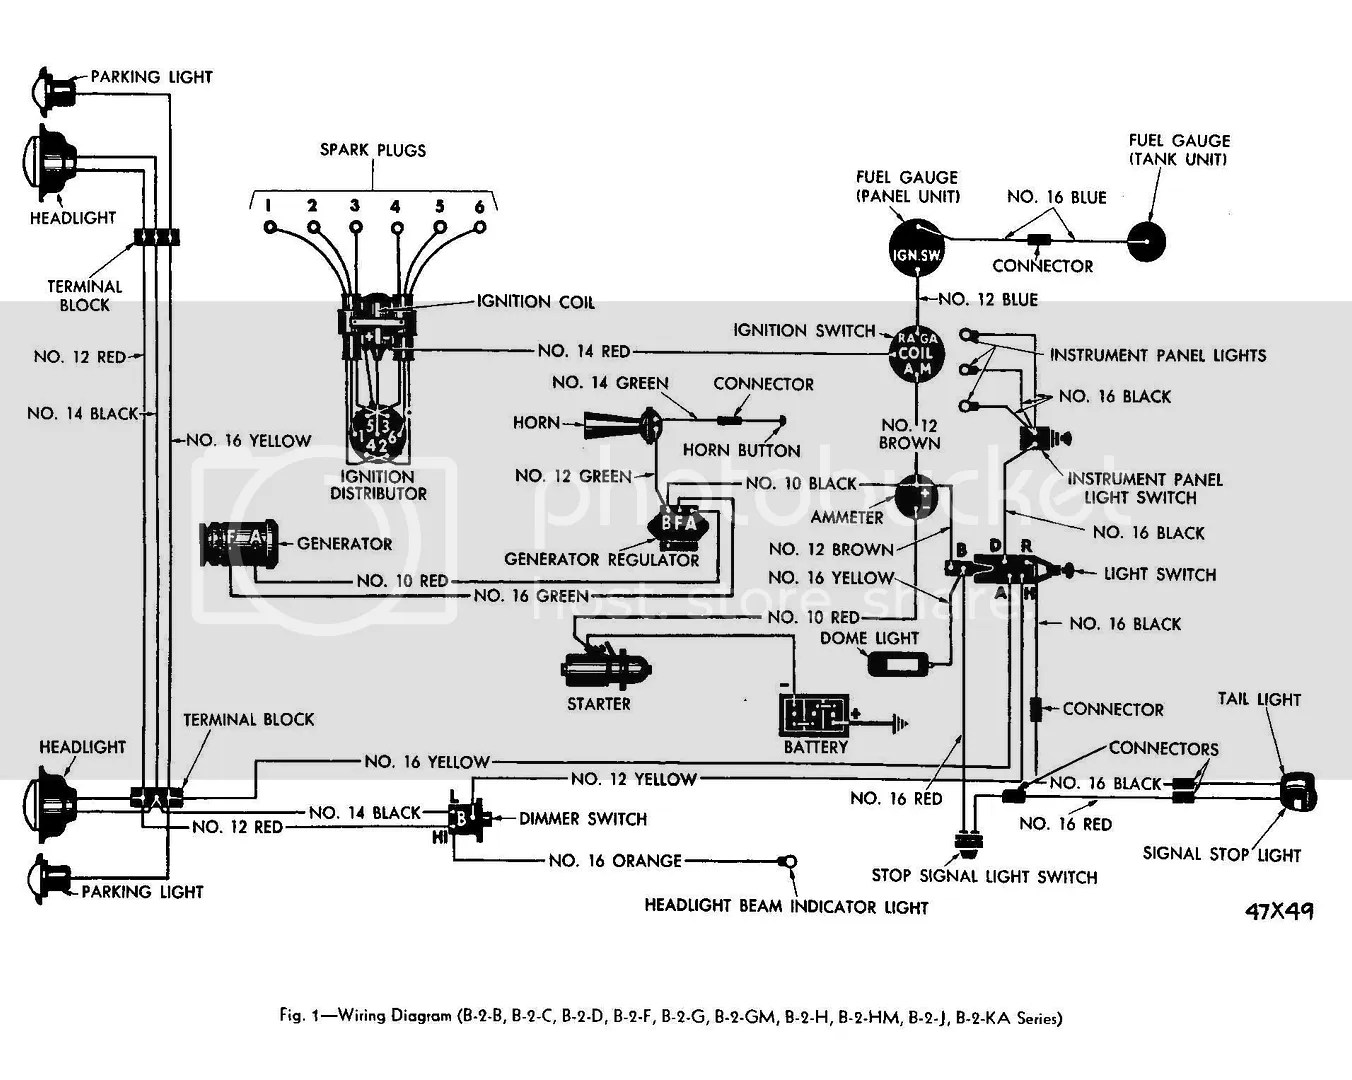 1953 Willys Wagon Wiring Diagram Full Hd Version Wiring Diagram Tessdiagram Emballages Sous Vide Fr